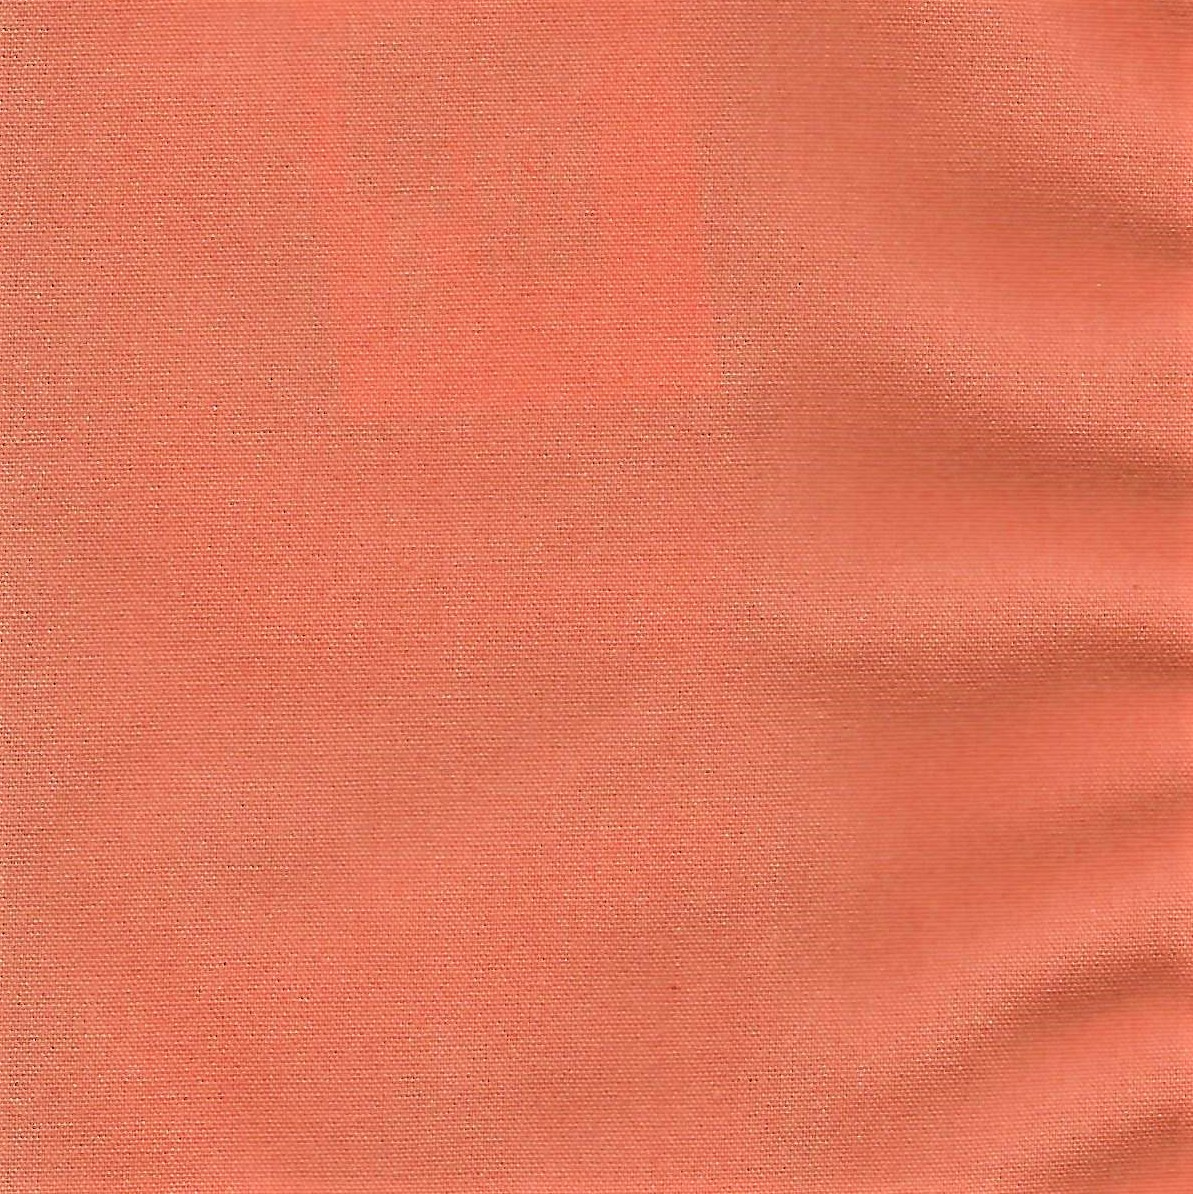 Custom linen custom table linen company for Table coral sample